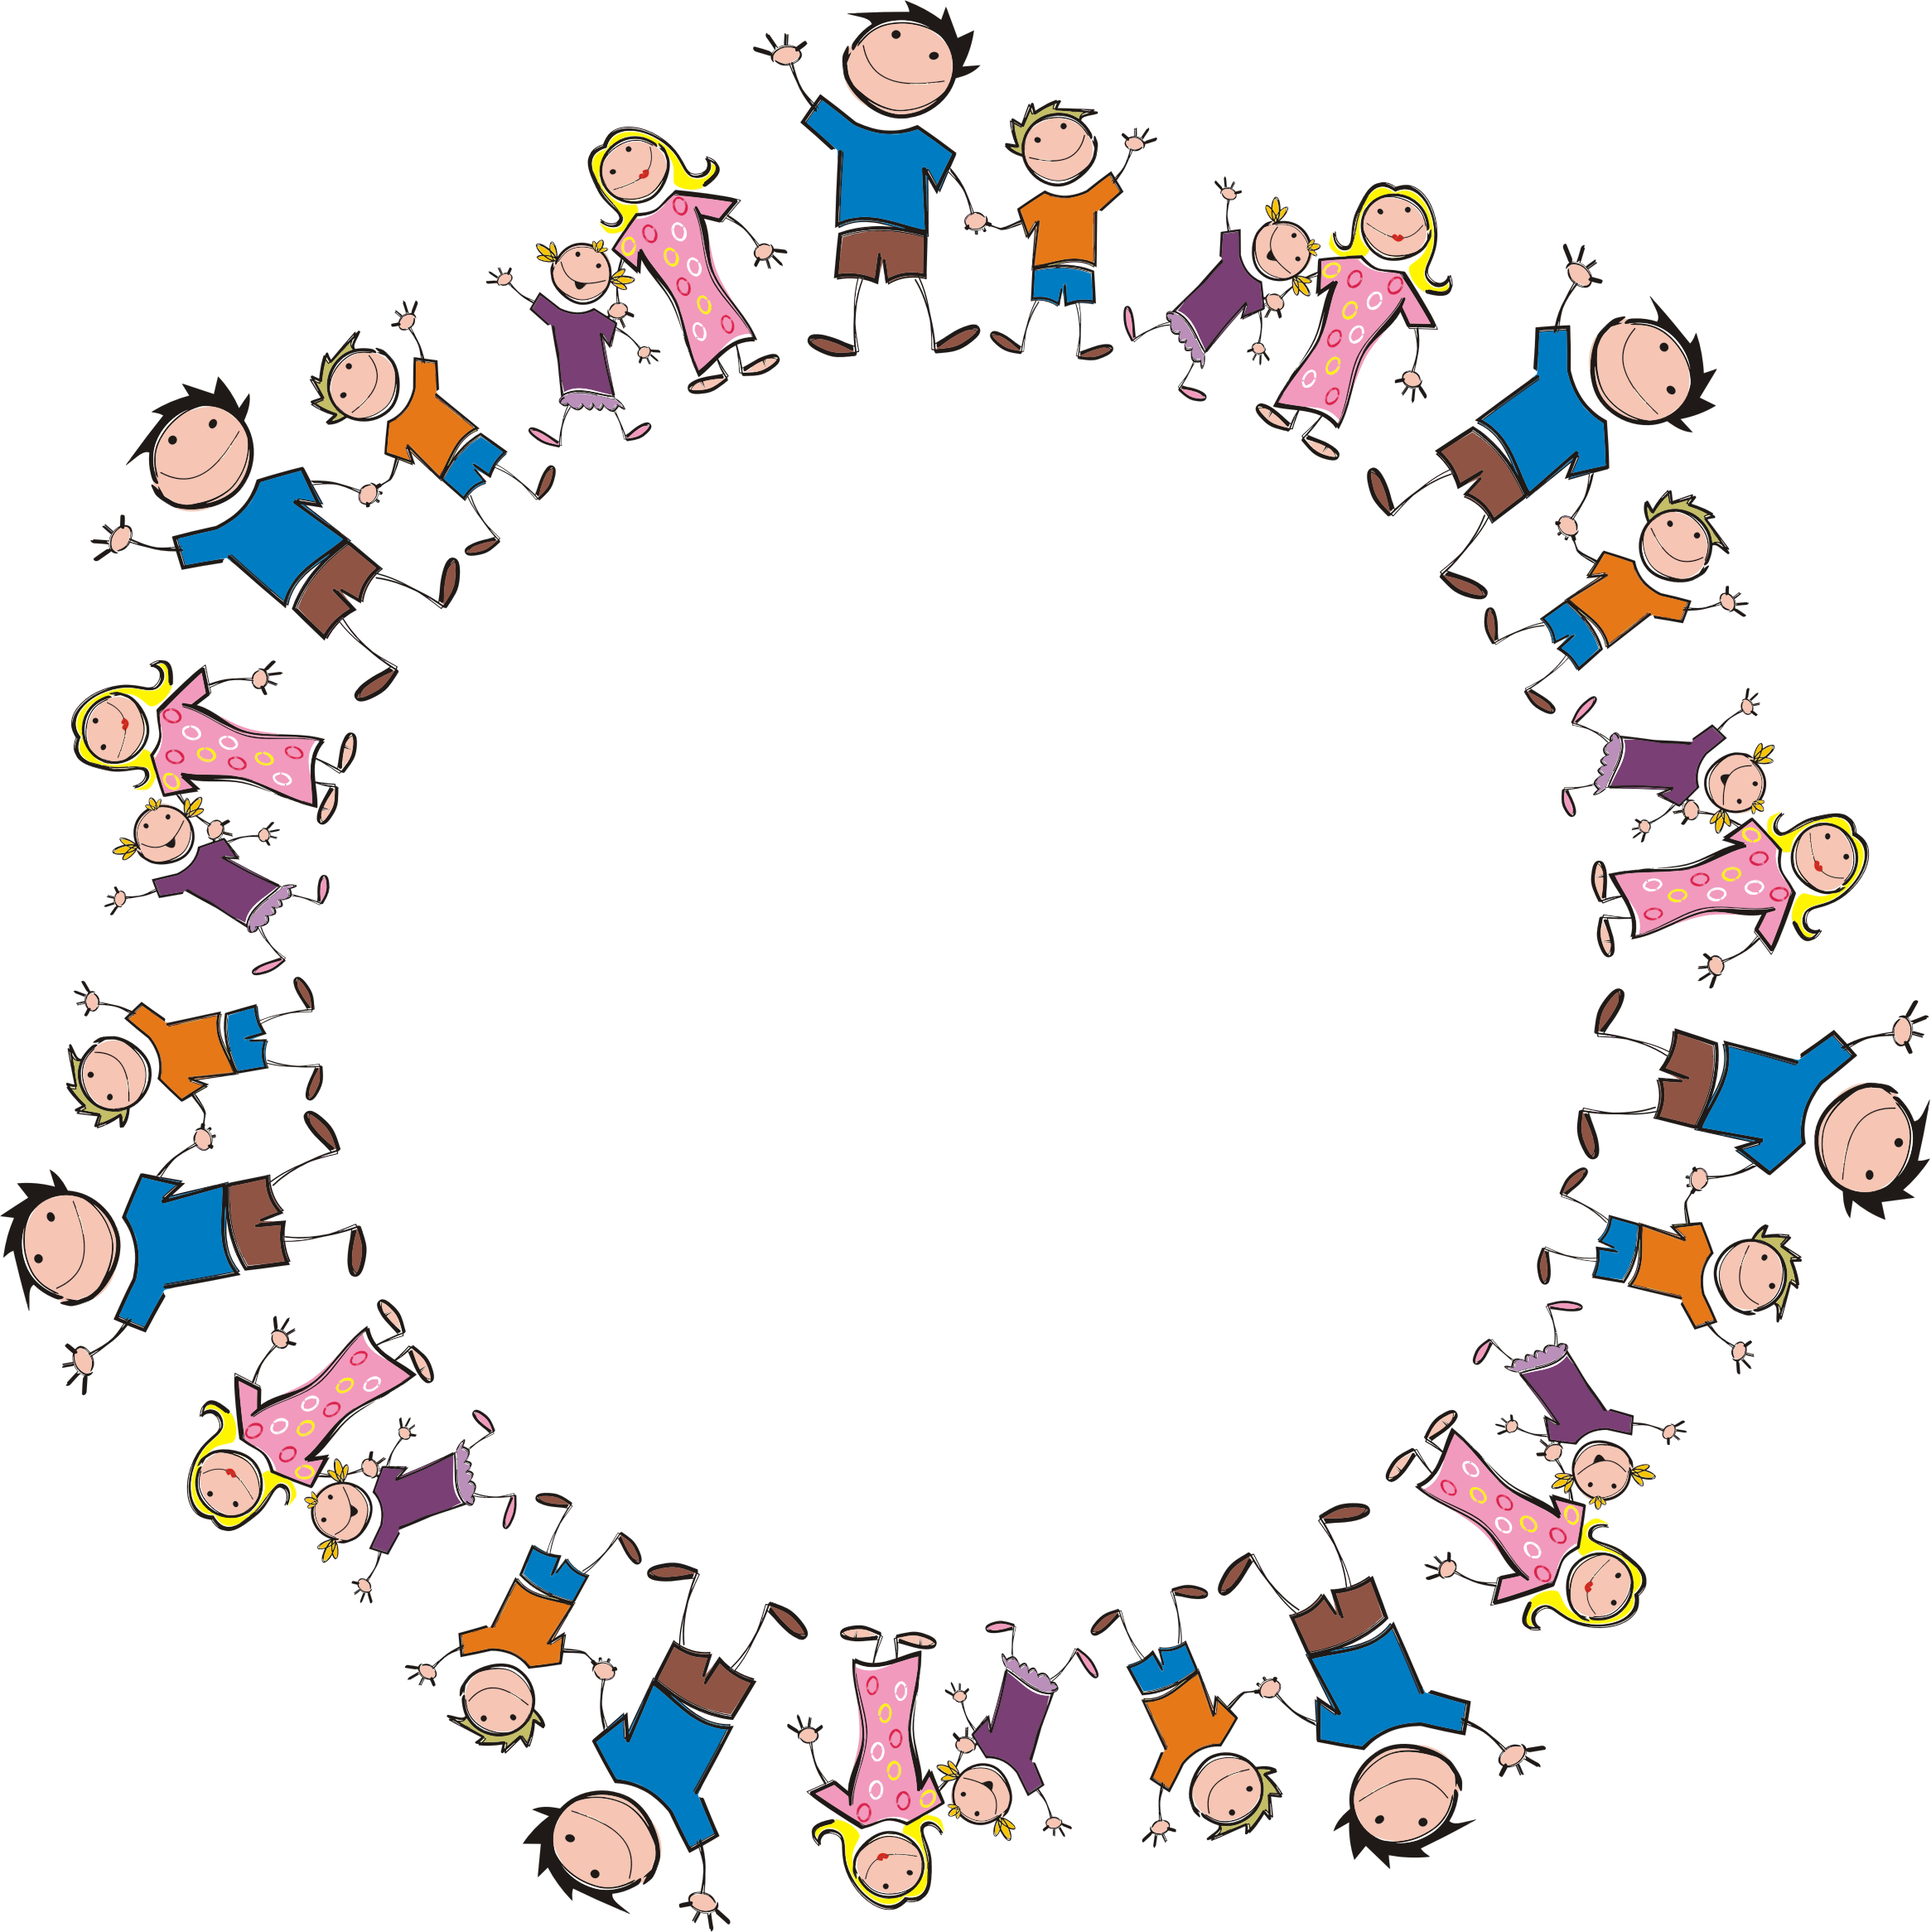 Stick Figure Family Circle by GDJ